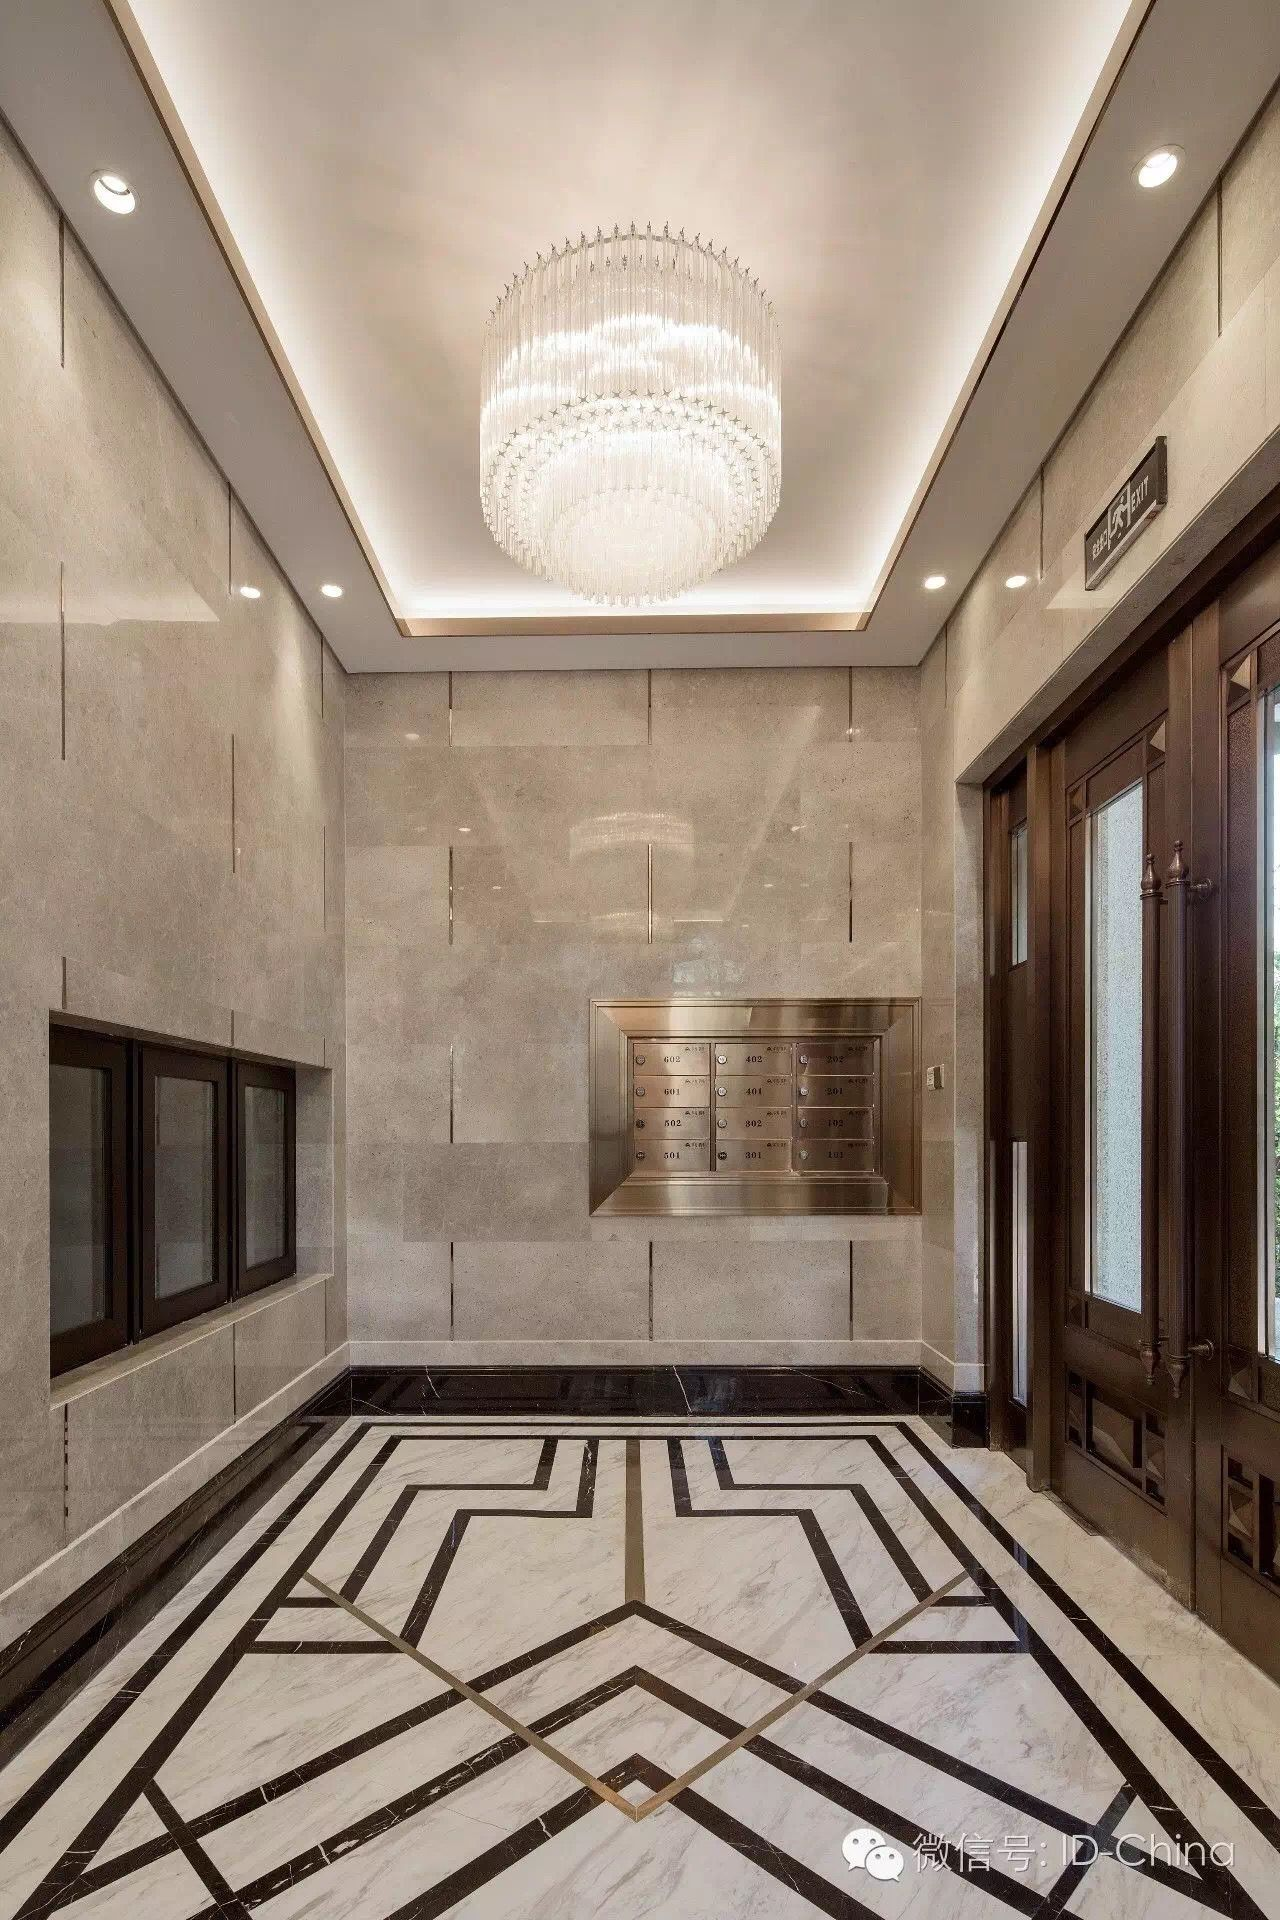 Exquisite retro lift lobby tile pinterest lobbies for Elevator flooring options